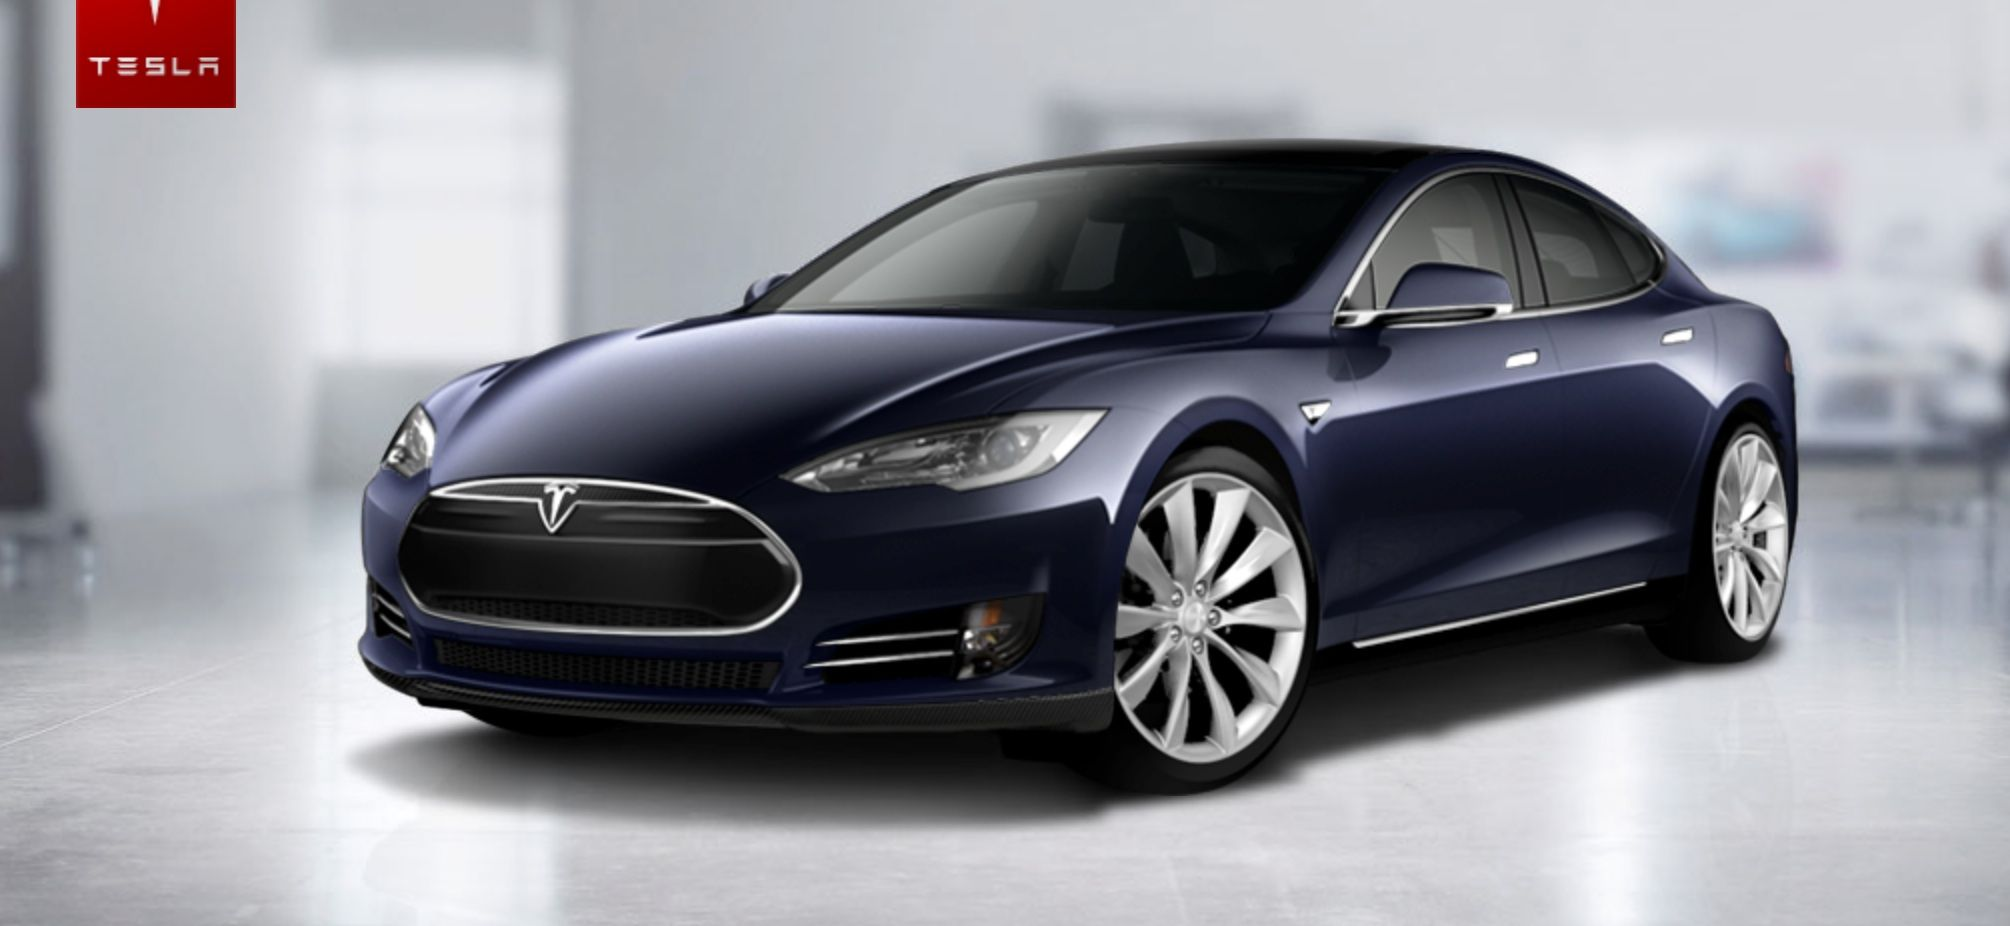 Tesla Model S fully loaded P85 Performance with dual